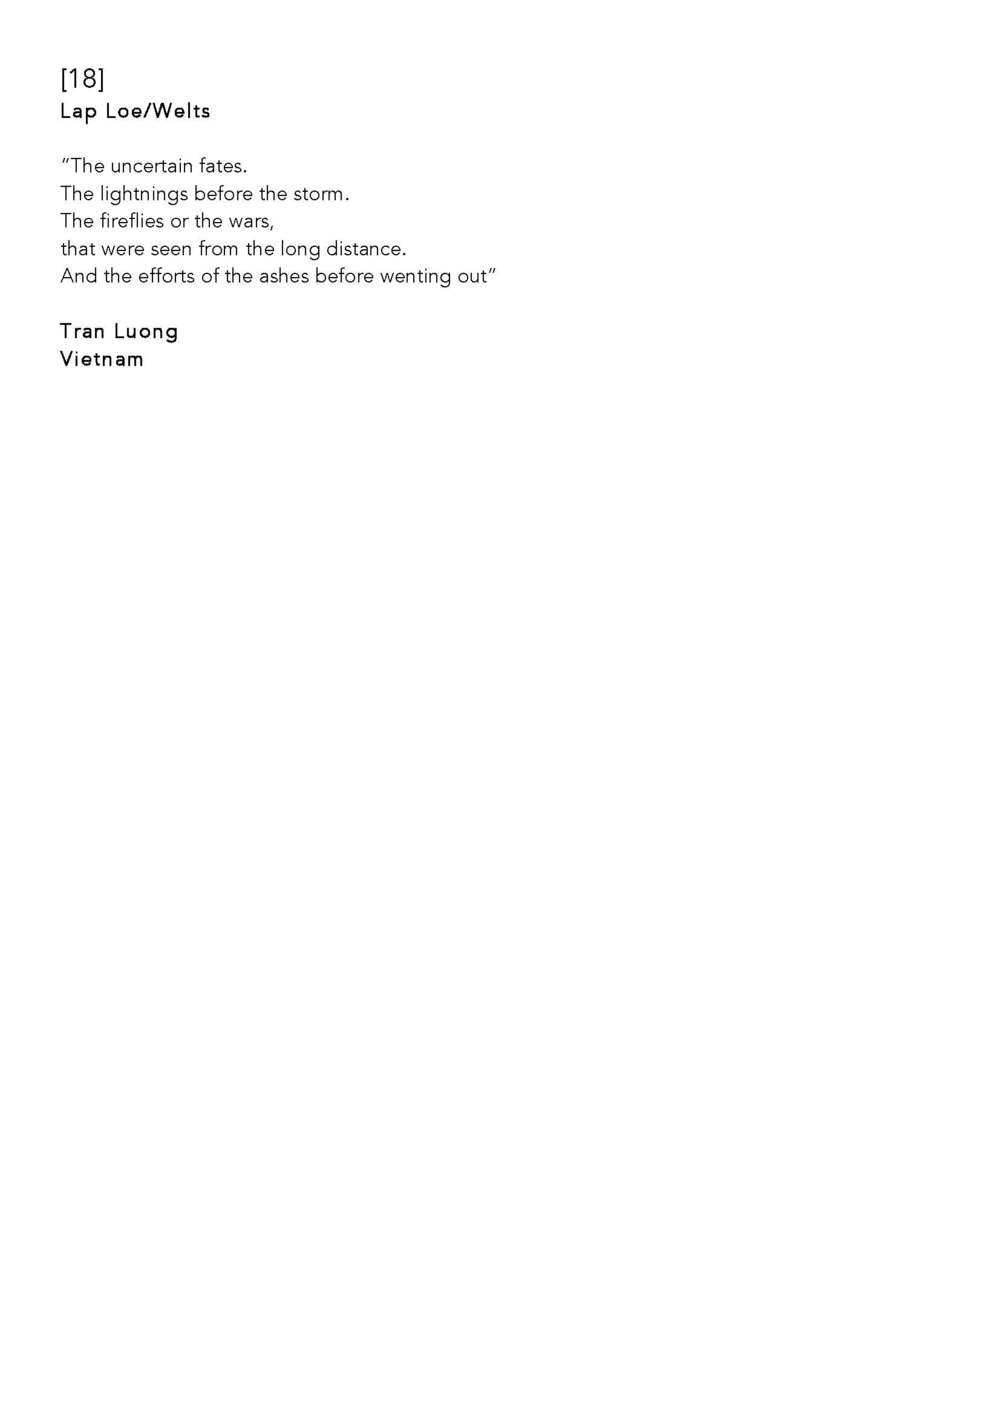 Poetry Collection - Everyone can Poetry _ For 12 May 2014 - R2_Page_18.jpg